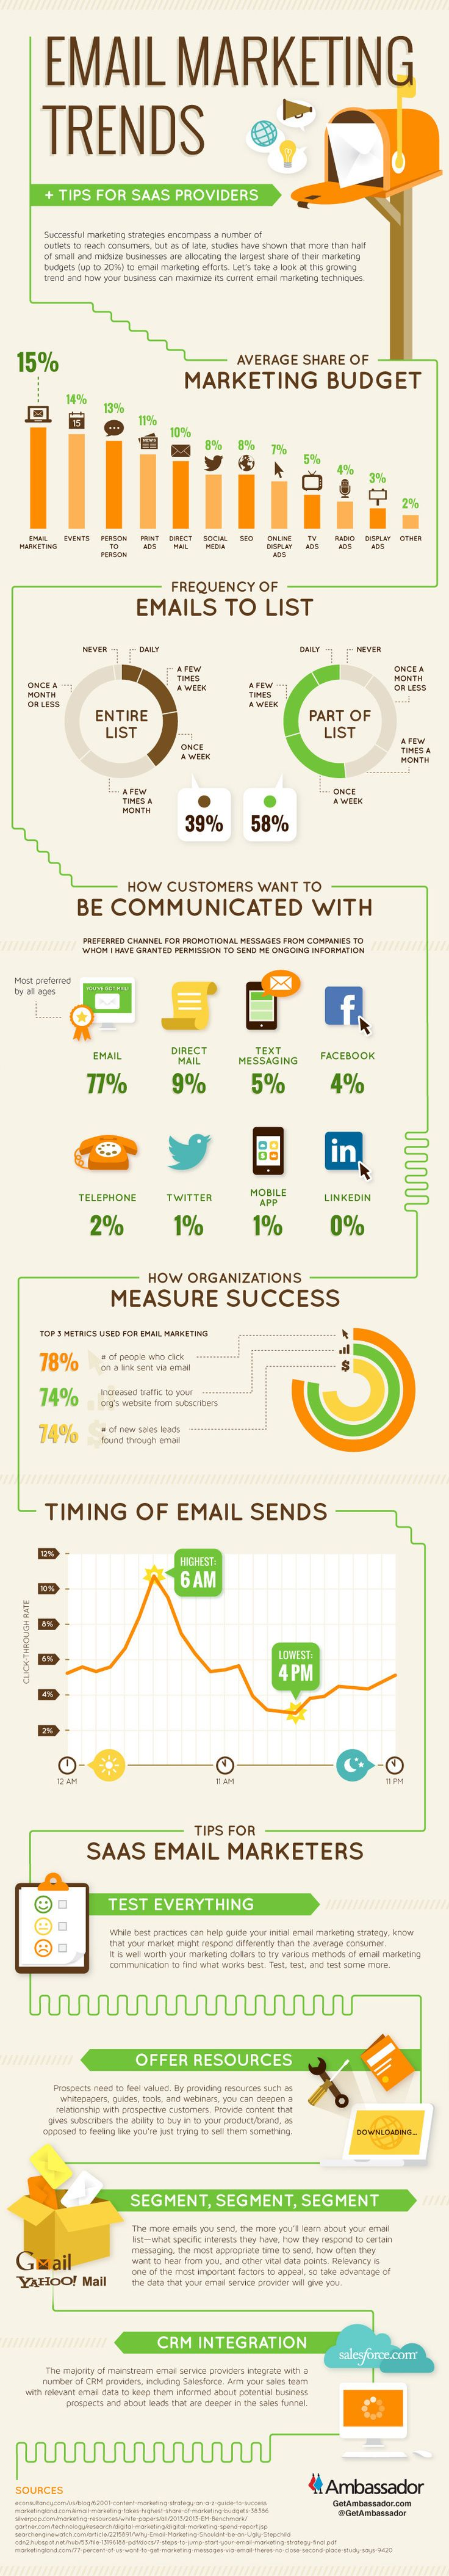 #emailmarketing trends #roi #SouthAfrica Image credit: graphs.net